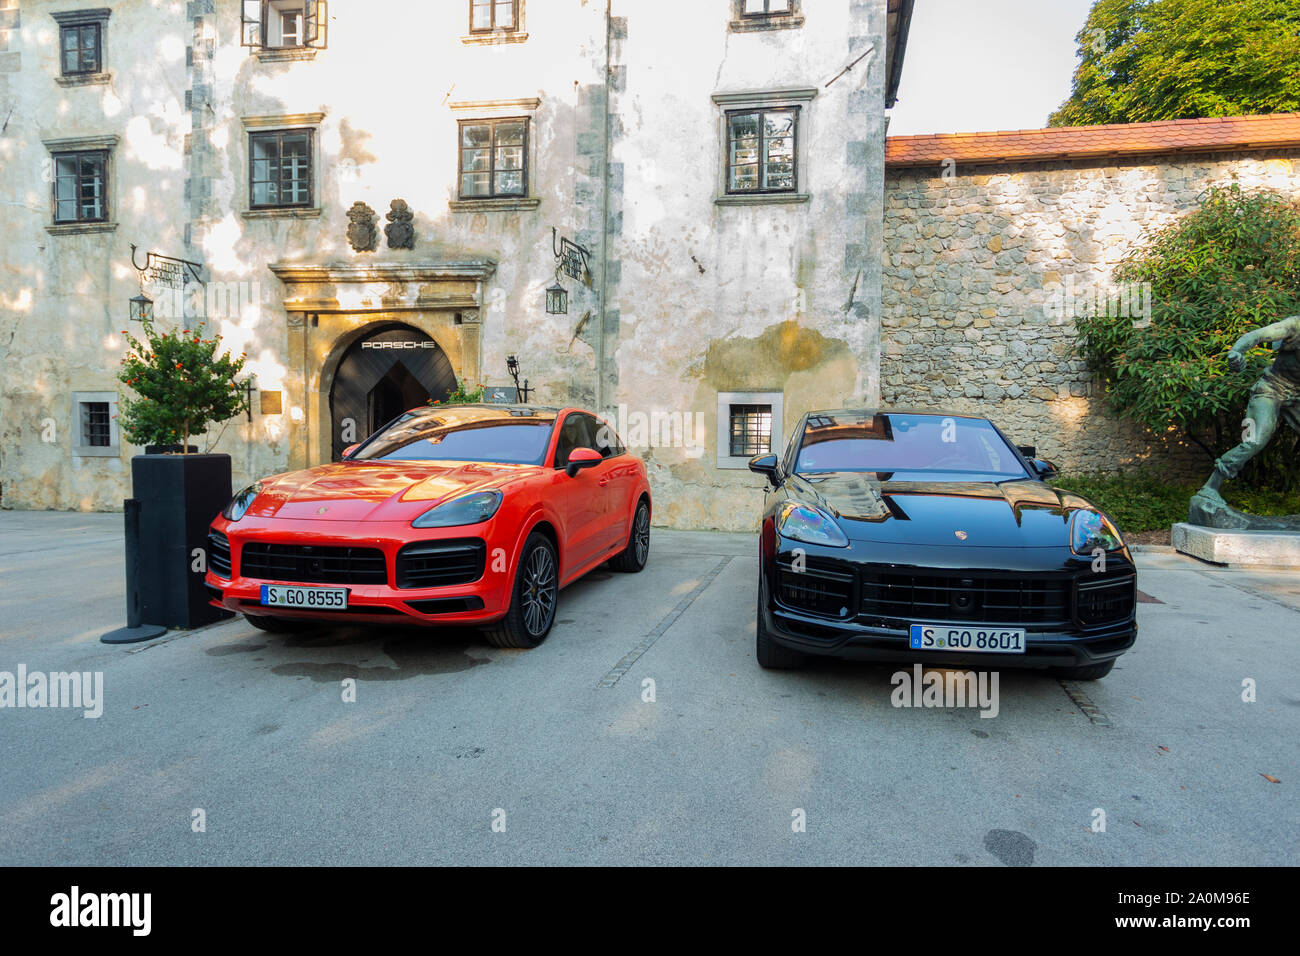 Slovenia Ljubljana 31 August 2019 Red And Black Porsche Cayenne Coupe Turbo S From Stuttgart During Test Drive Stock Photo Alamy